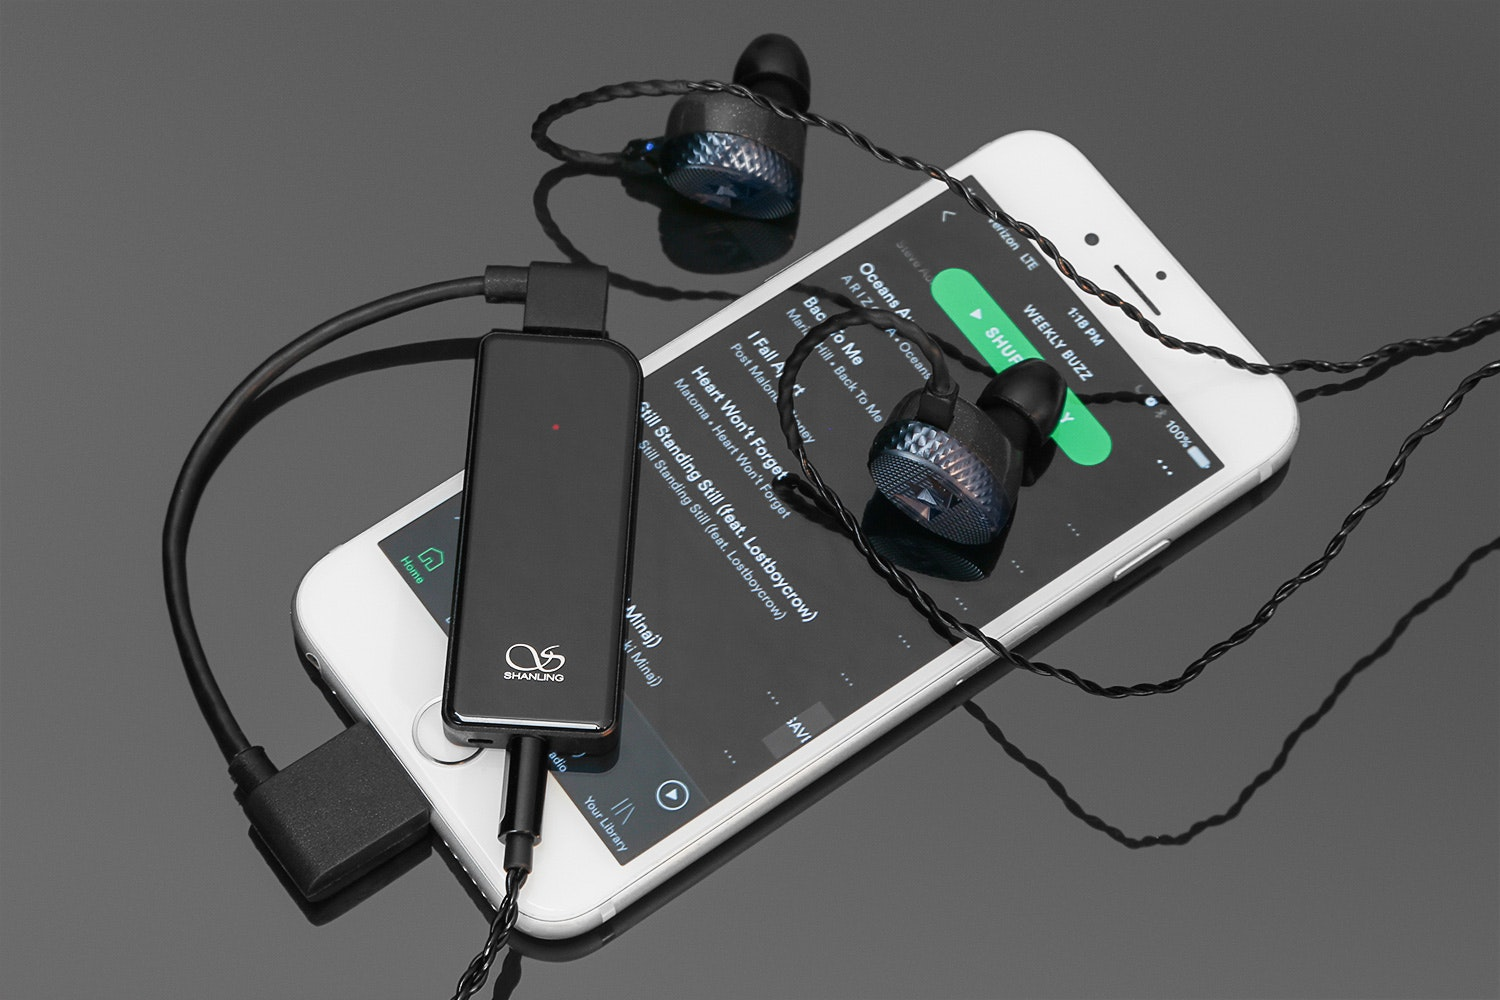 Shanling UP Portable DAC/Amp